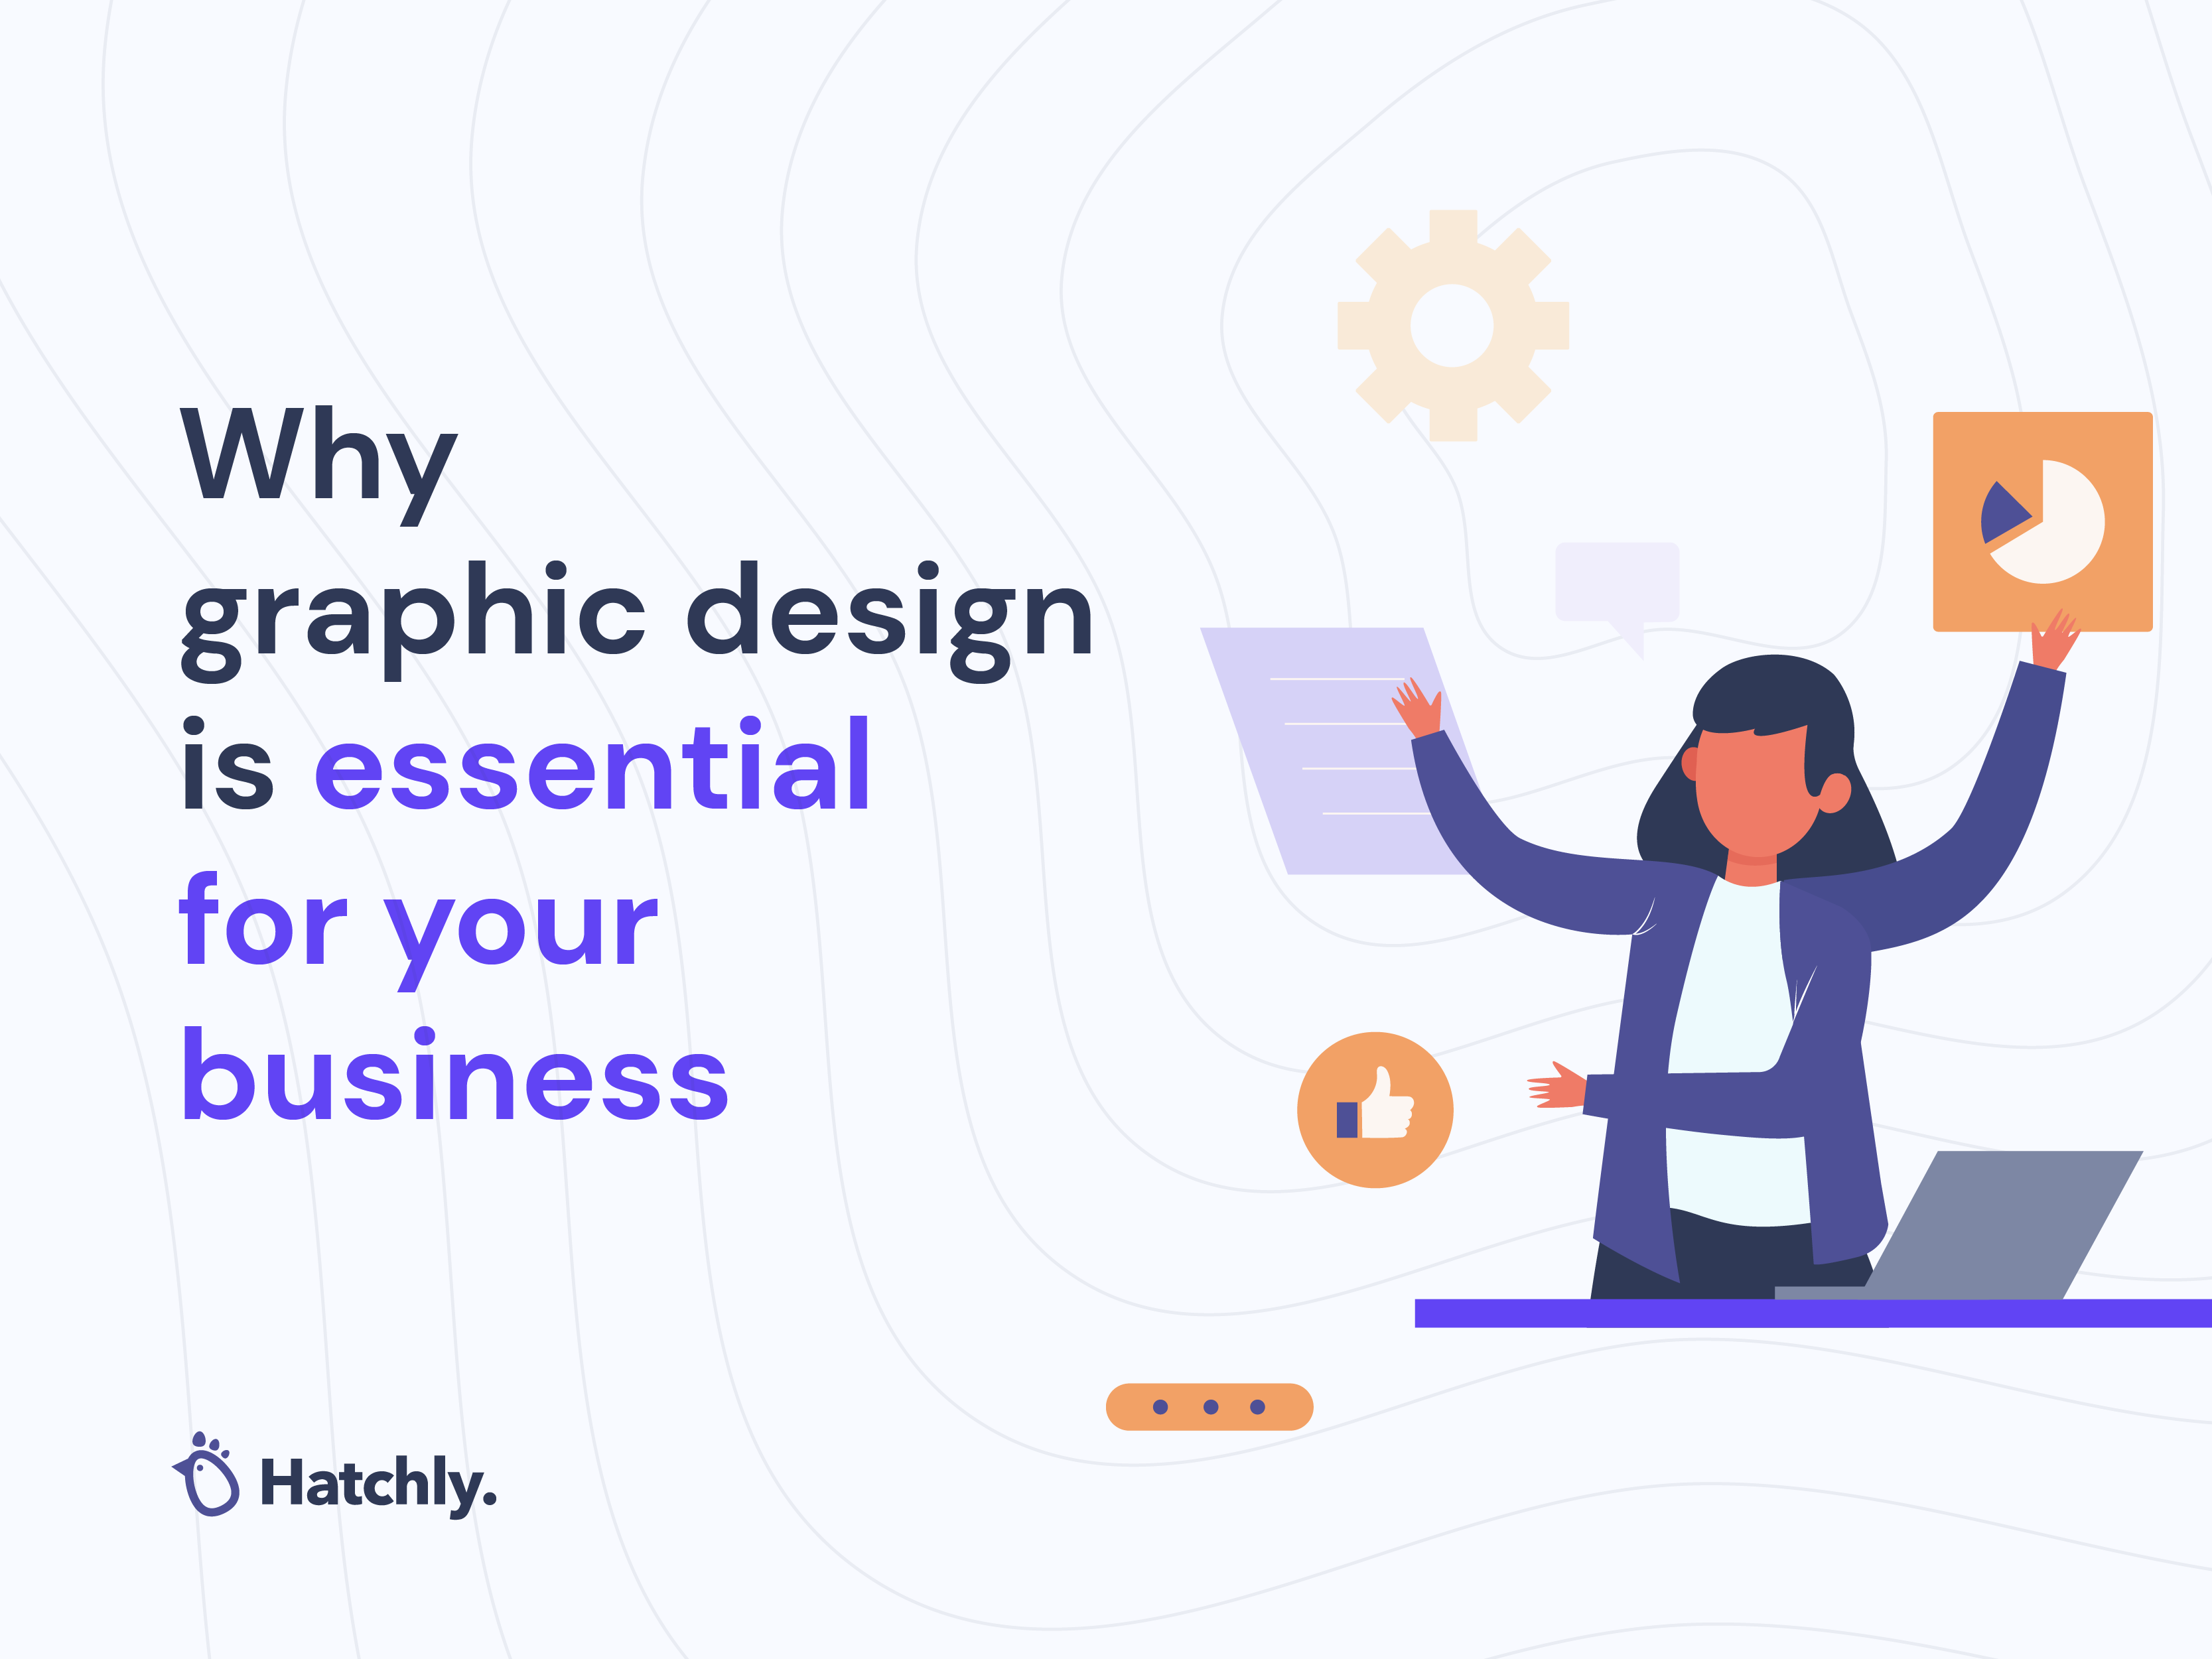 Why graphic design is essential for your business 🎨